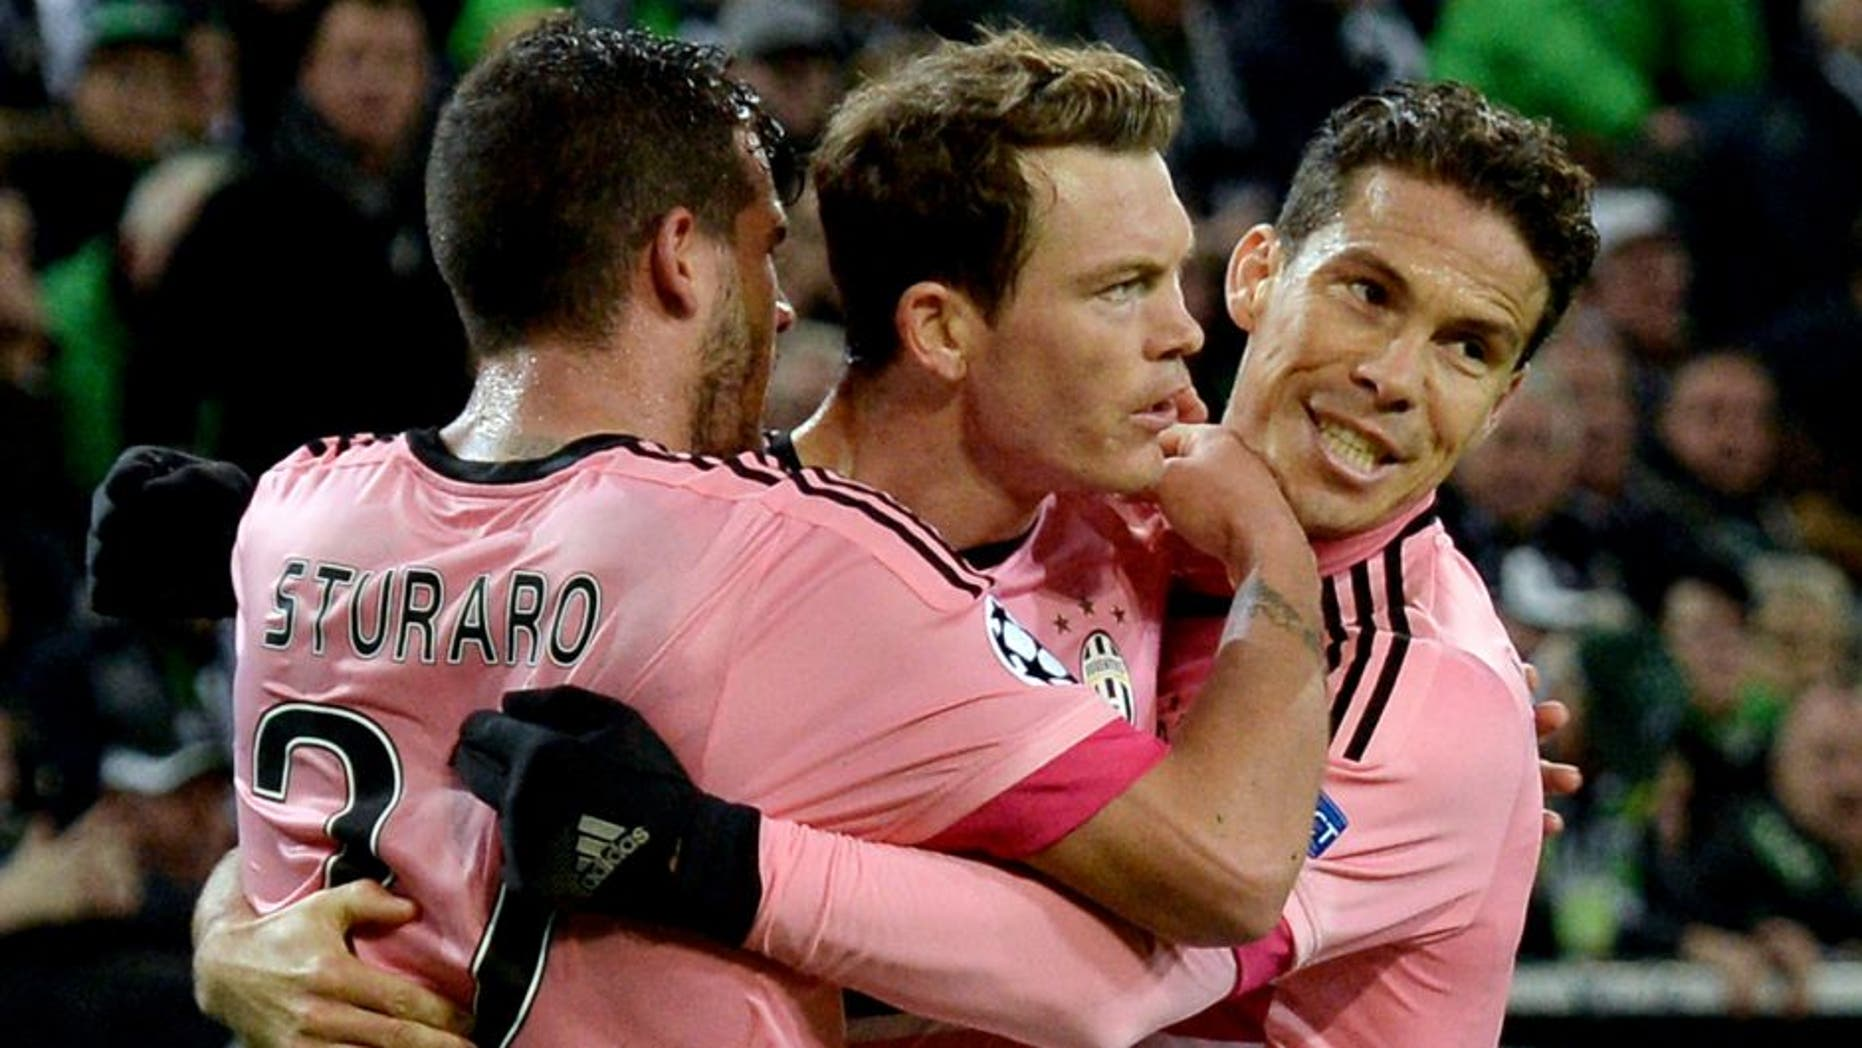 MOENCHENGLADBACH, GERMANY - NOVEMBER 03: Stephan Lichtsteiner (C) of Juventus celebrates with team mates after scoring his team's first goal during the UEFA Champions League group stage match between VfL Borussia Monchengladbach and Juventus FC on November 3, 2015 in Moenchengladbach, Germany. (Photo by Sascha Steinbach/Bongarts/Getty Images)